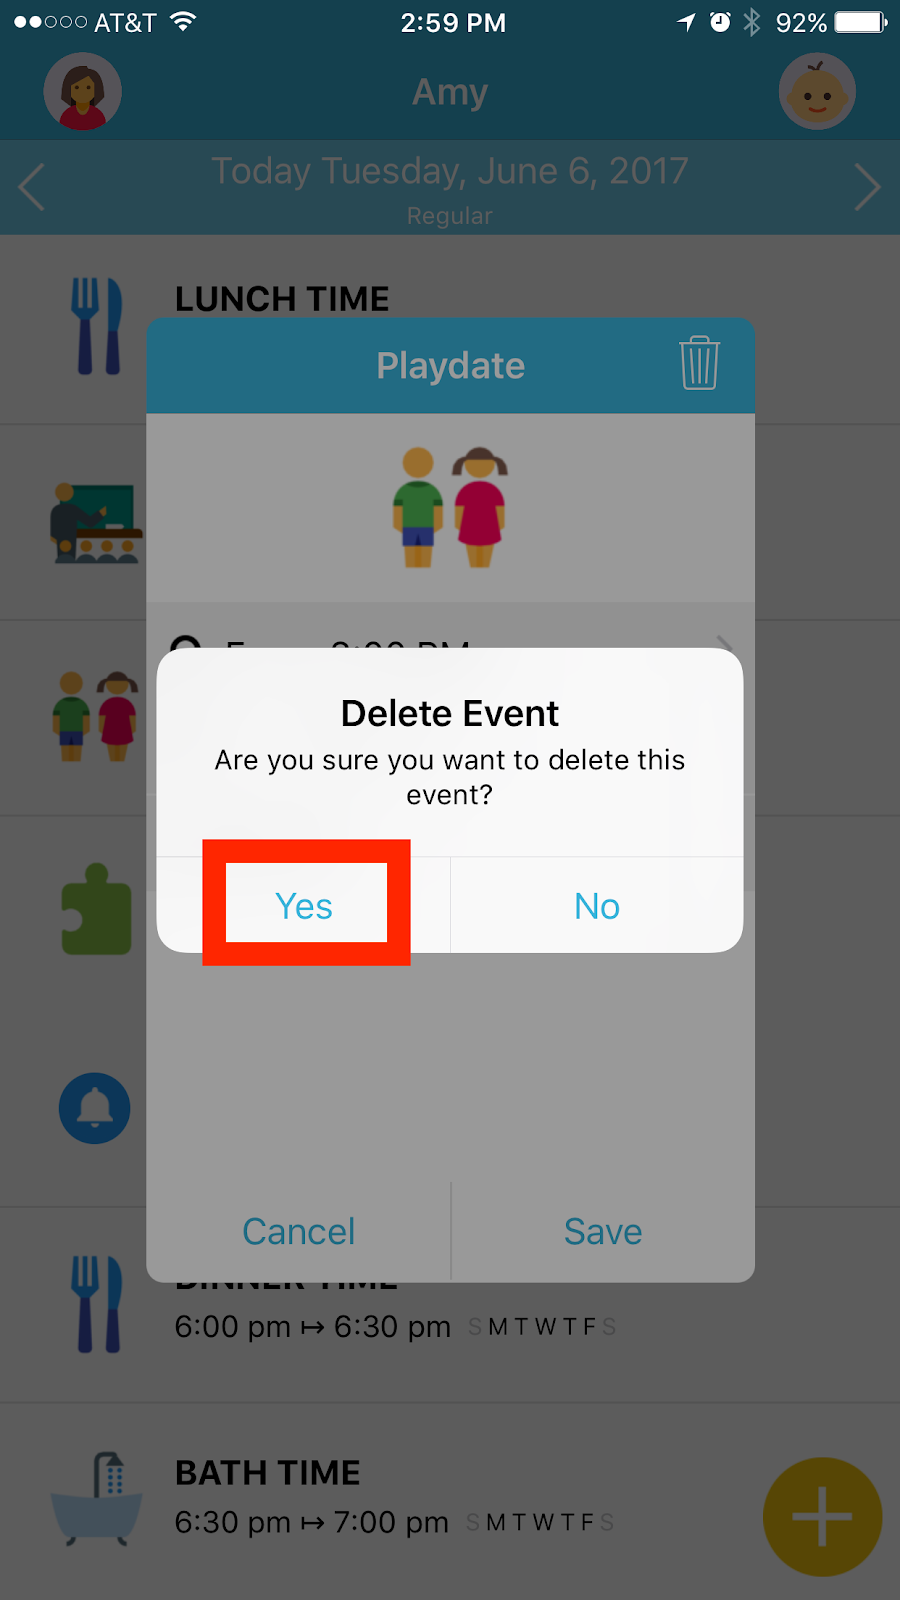 Octopus watch app: validation of the cancellation of an event